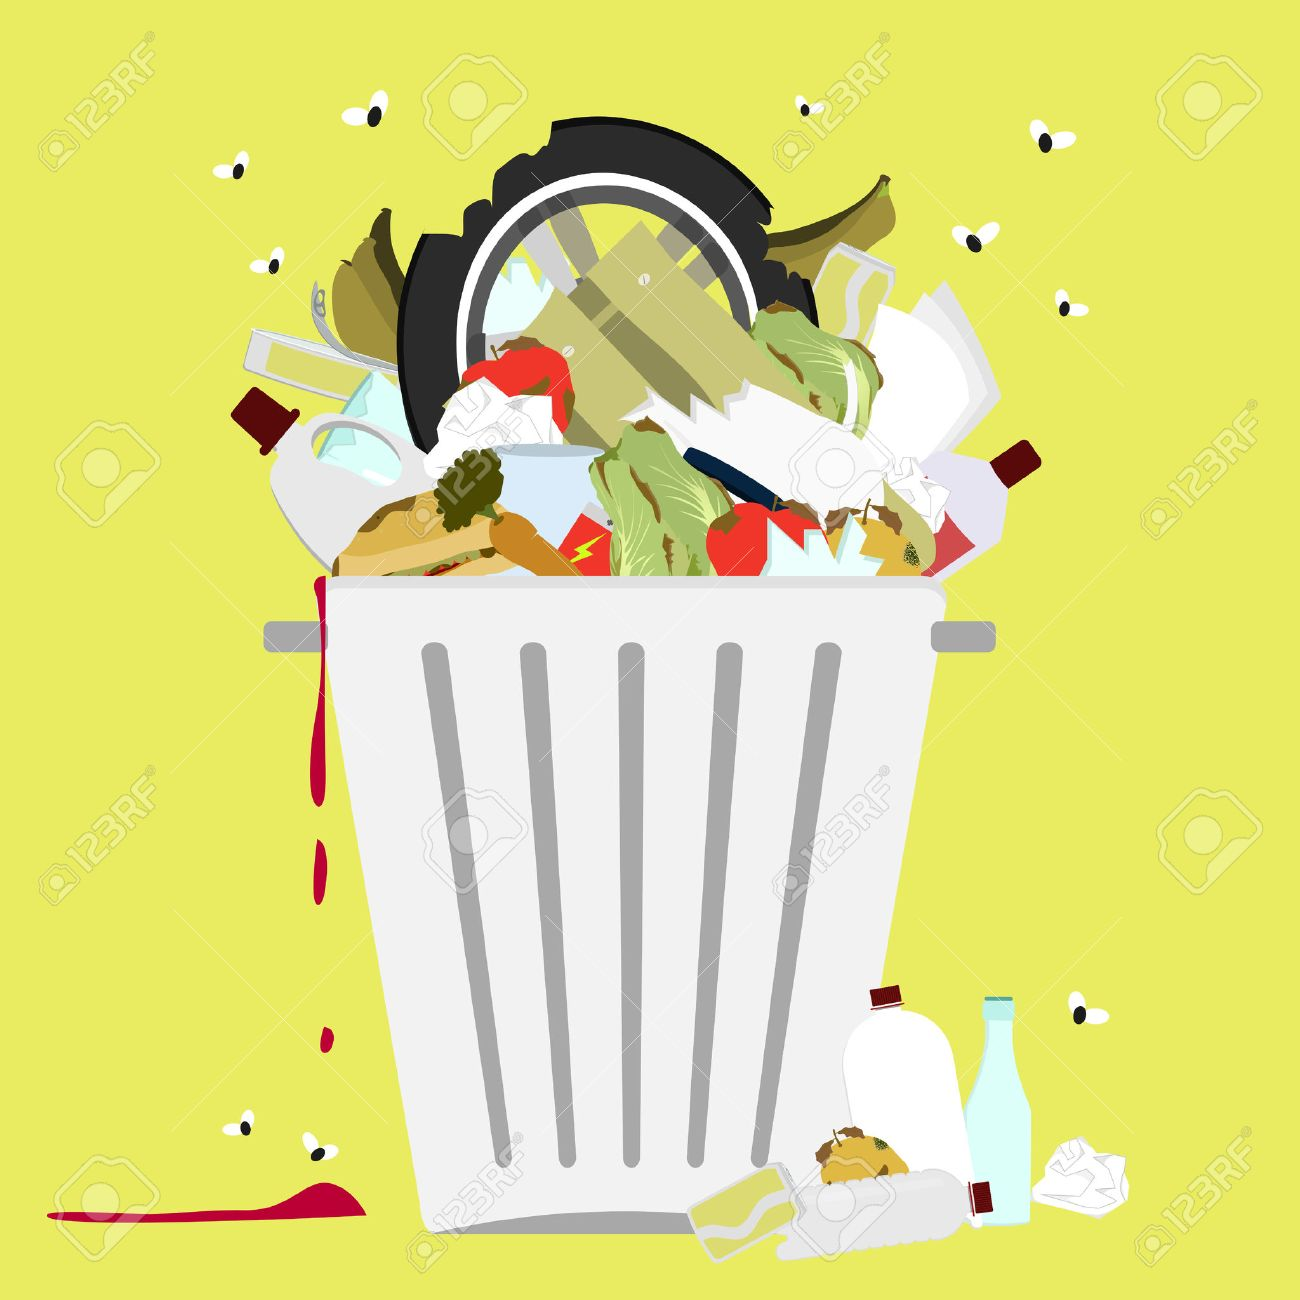 Garbage can full of trash. Large trash bin overflowing garbage (rotten fruit, old tires, packing of plastic, metal and glass). Trash fallen to the ground. Flies flying. - 39349746